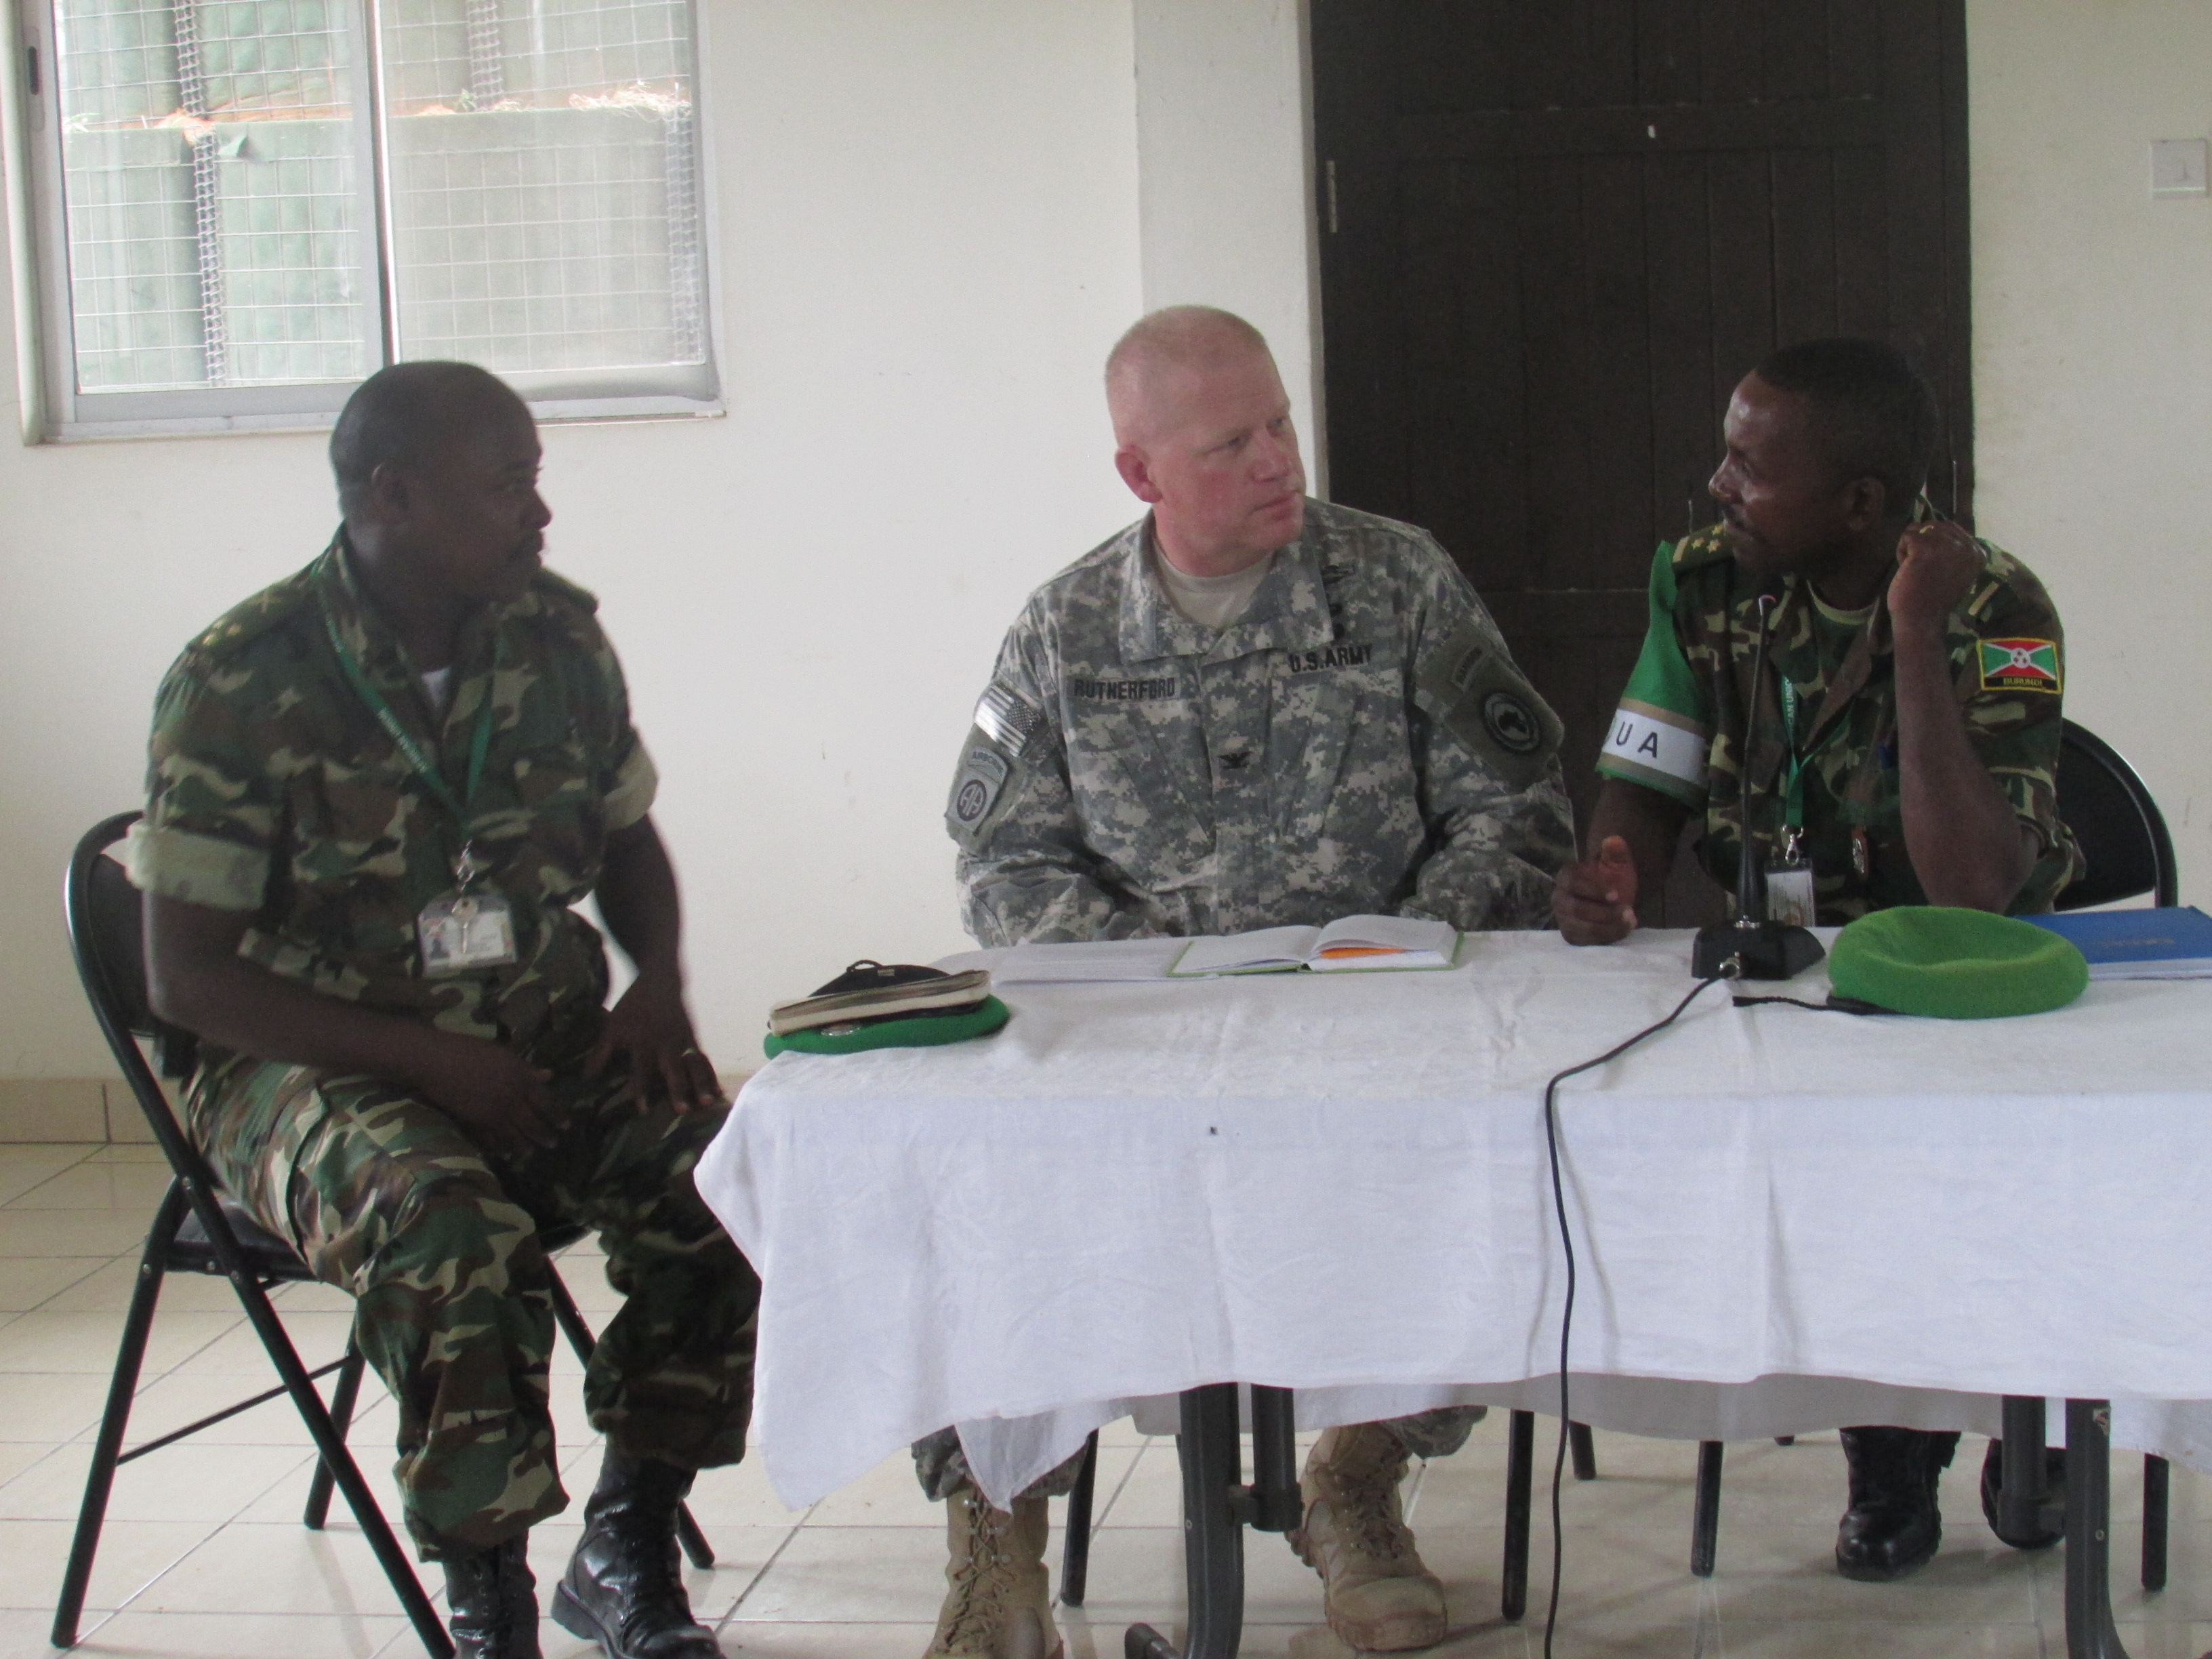 U.S. Army Col. Wilson Rutherford, center, U.S. Military Coordination Cell Mogadisu, addresses Burundi National Defense Forces staff on the U.S. commitment to support BNDF serving in the African Union Mission in Somalia during a visit to the AMISOM Sector 5 Headquarters located in northern Mogadishu. The MCC is a prime component of the Combined Joint Task Force –Horn of Africa whose mission is to help build the defense capability, capacity, and coordination among its East African partners to improve capacity to neutralize violent extremist organizations.  (BNDF Courtesy Photo)